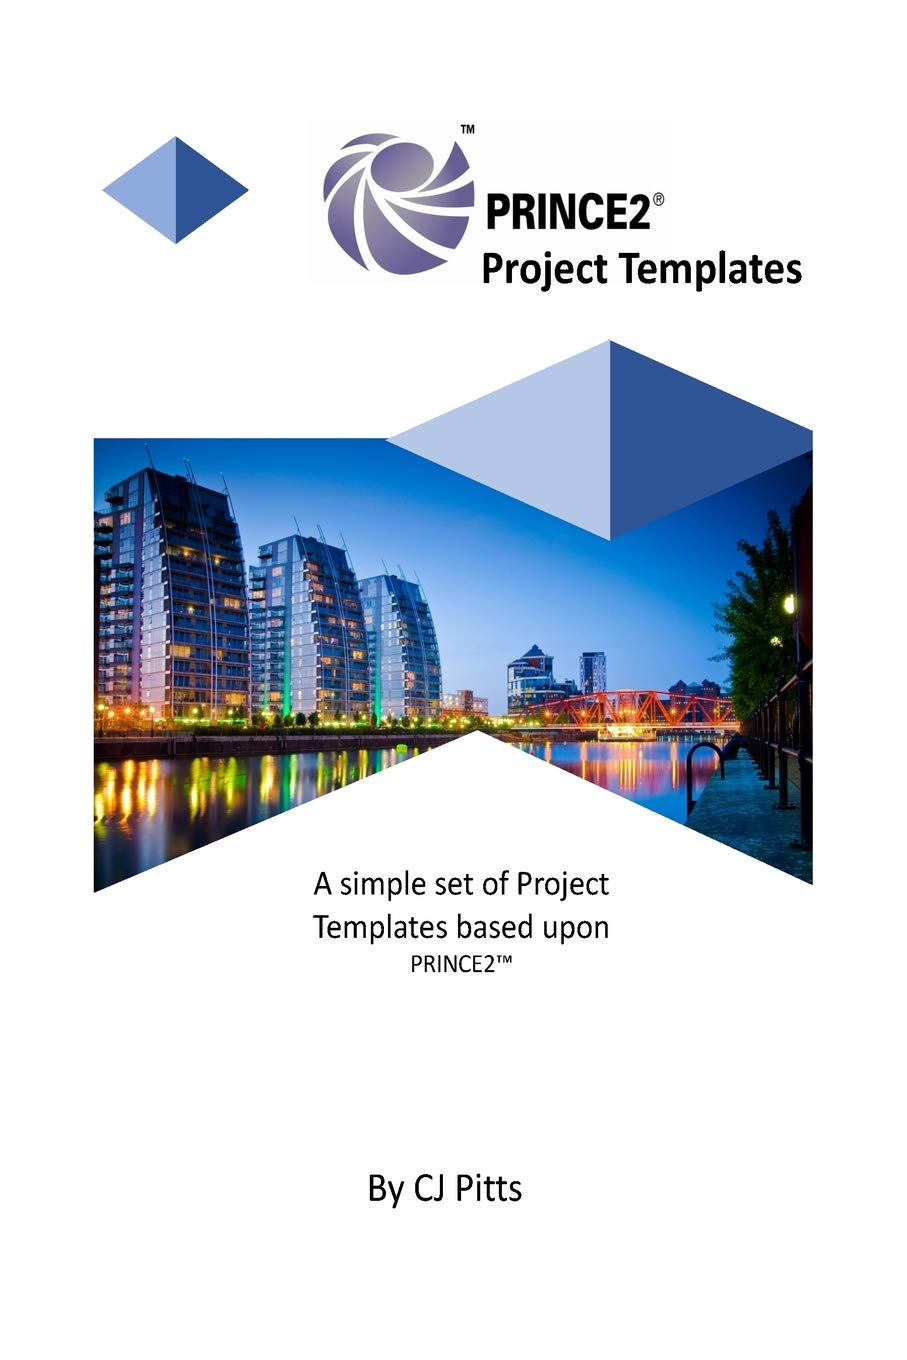 Amazon Com Prince2 Templates 9781987550825 Pitts C J Books